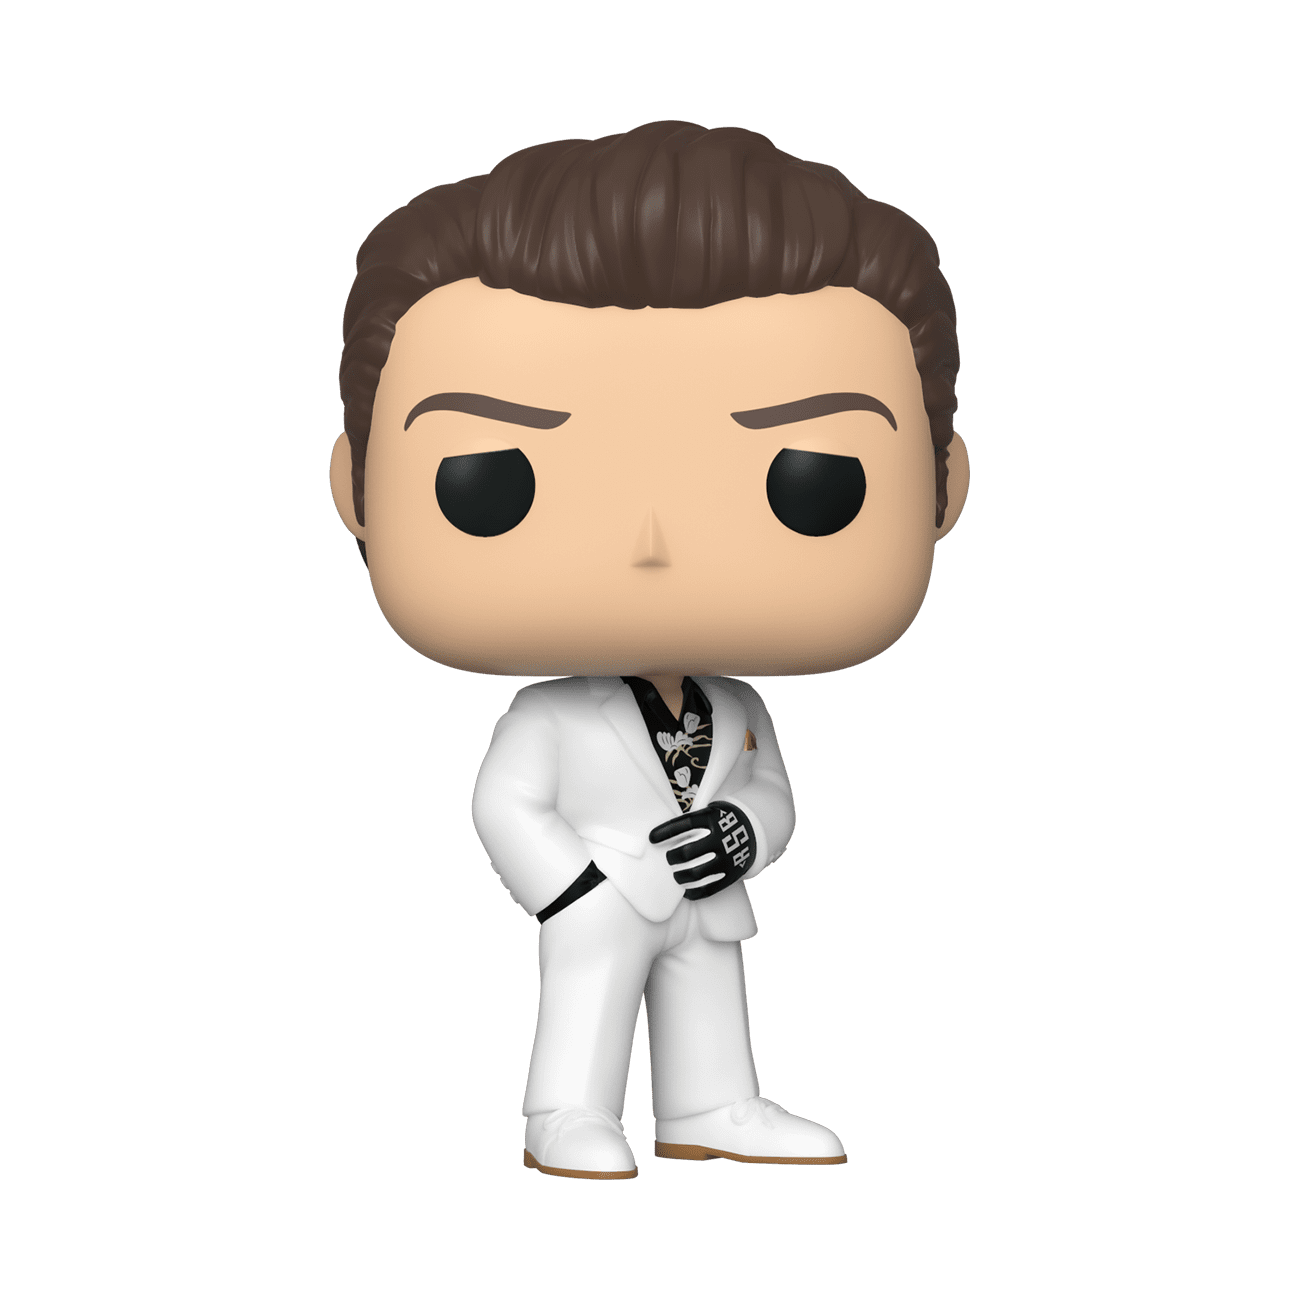 Funko Pop! Heroes: Birds of Prey - Roman Sionis (White Suit) 1/6 Chase